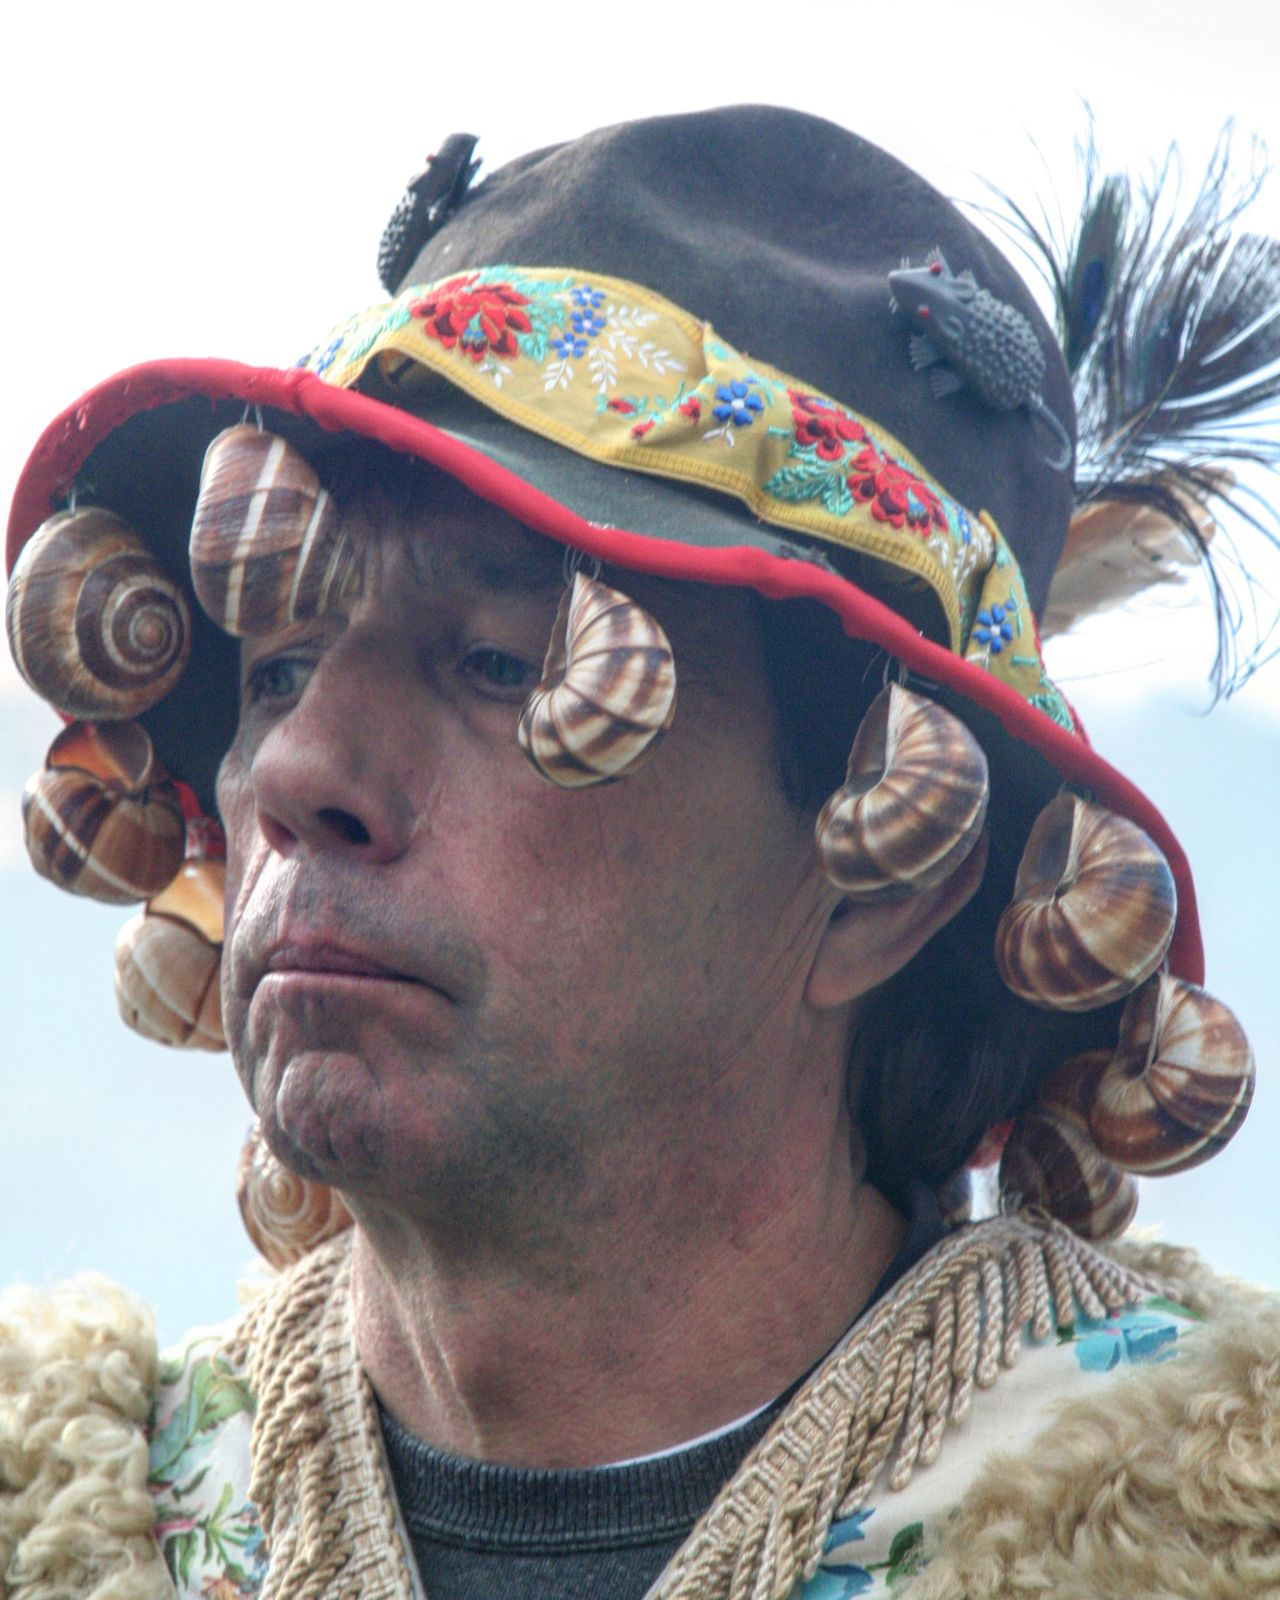 baio 2017 italy Baio 2017 Baio Italy Portrait Real People Uniqueness Carnival Parade Cultures Eyeem Market Traditional Culture Traditional Clothing Costume Trending Photos Close-up EyeEm Team Popular EyeEm Gallery EyeEmBestPics Snails Snail Shell Hats Carnival Crowds And Details Art Is Everywhere TCPM Break The Mold The Portraitist - 2017 EyeEm Awards